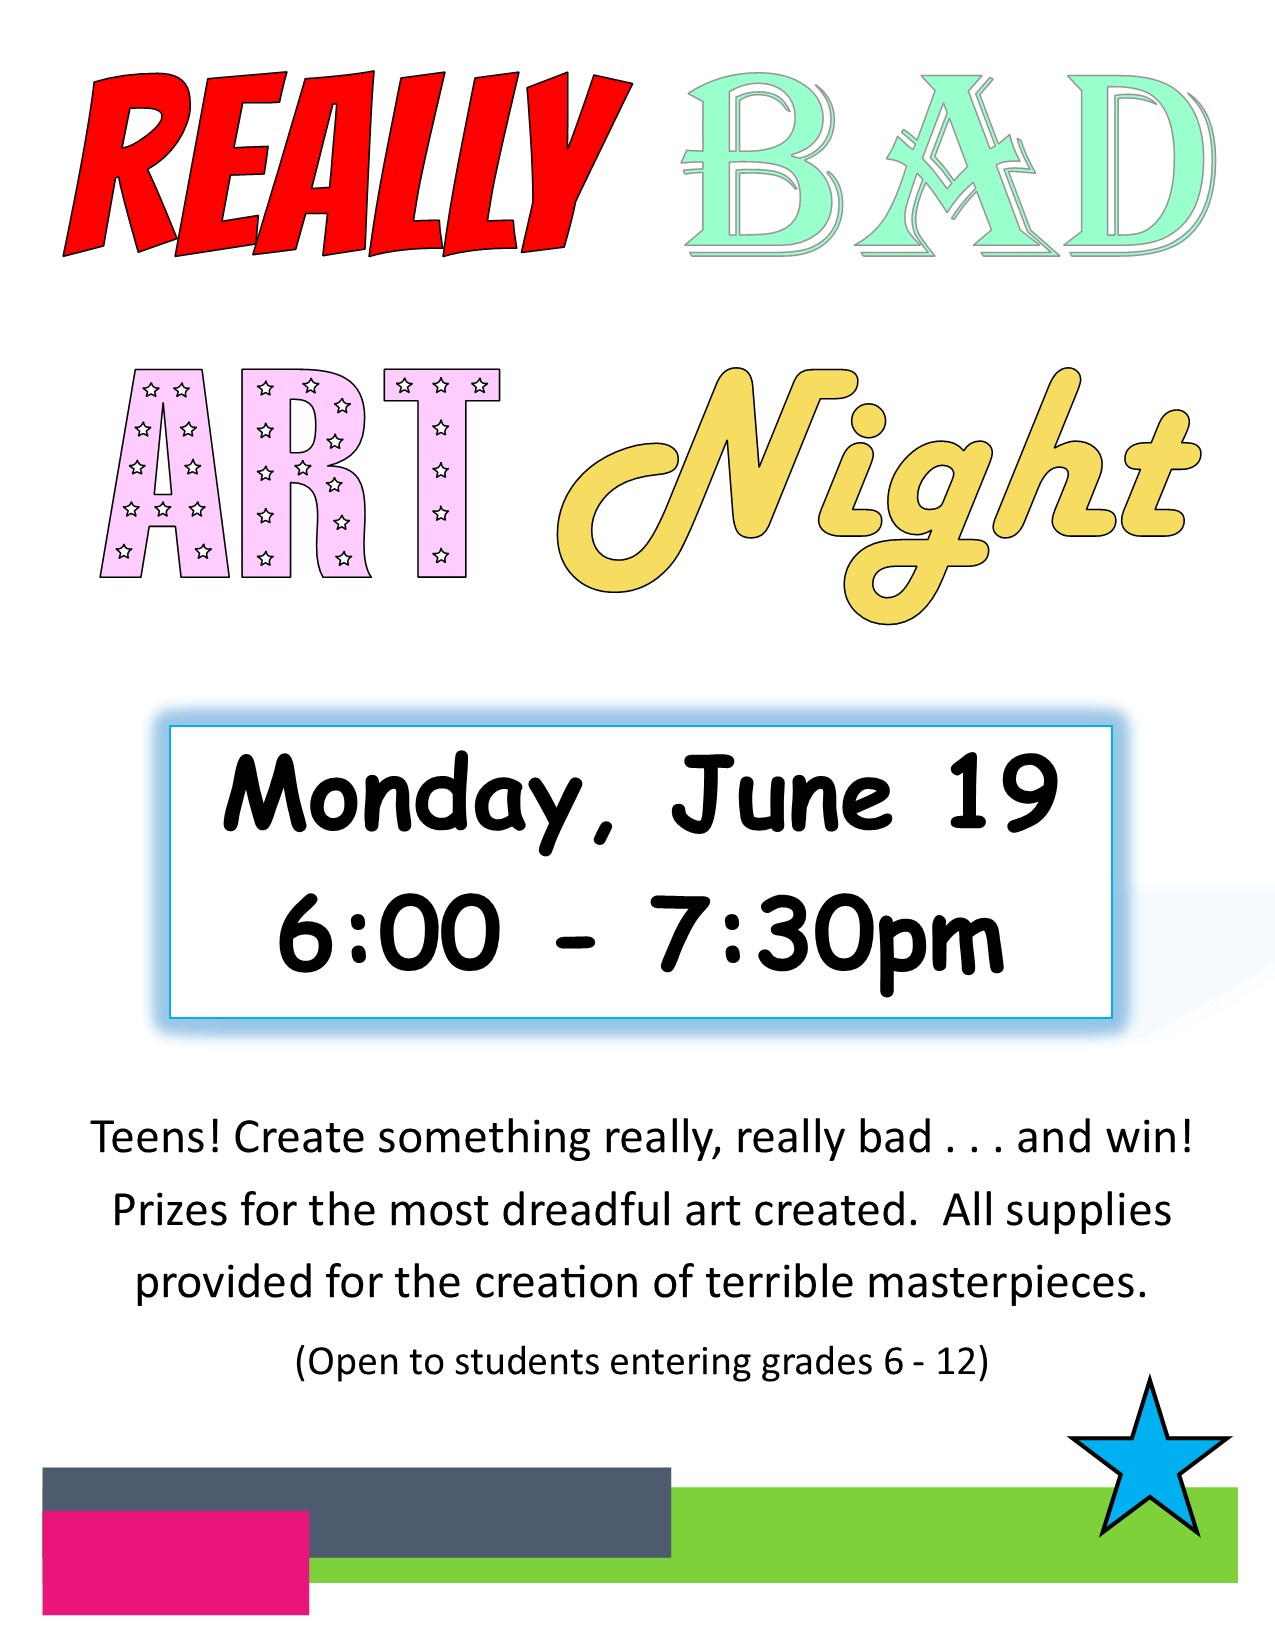 Really Bad Art Night Poster - Summer 2017